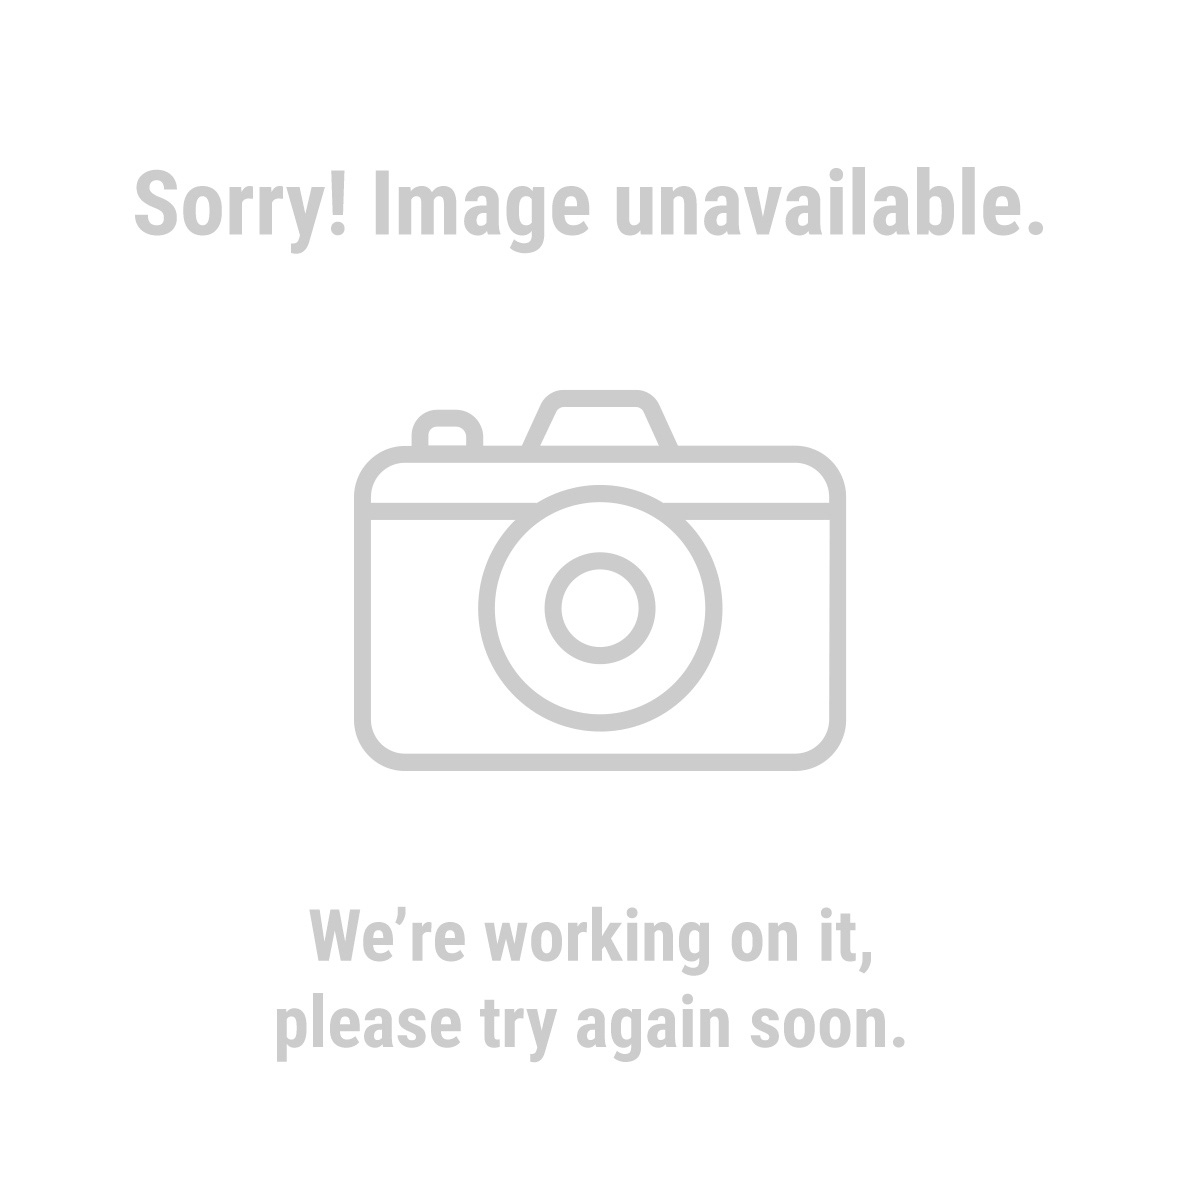 Central Pneumatic 68019 18 Gauge 2-in-1 Nailer/Stapler